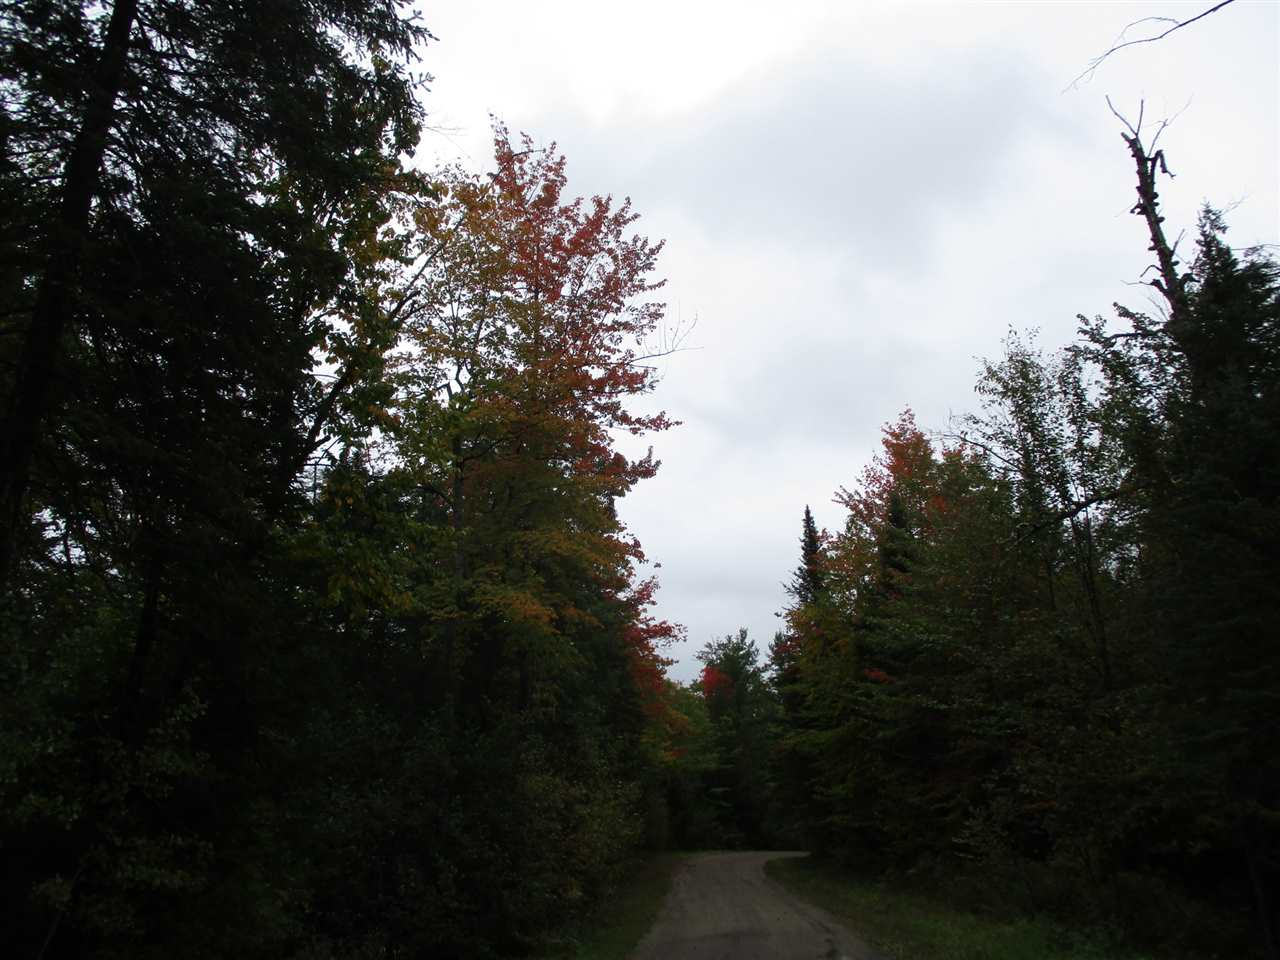 Keeseville image 8